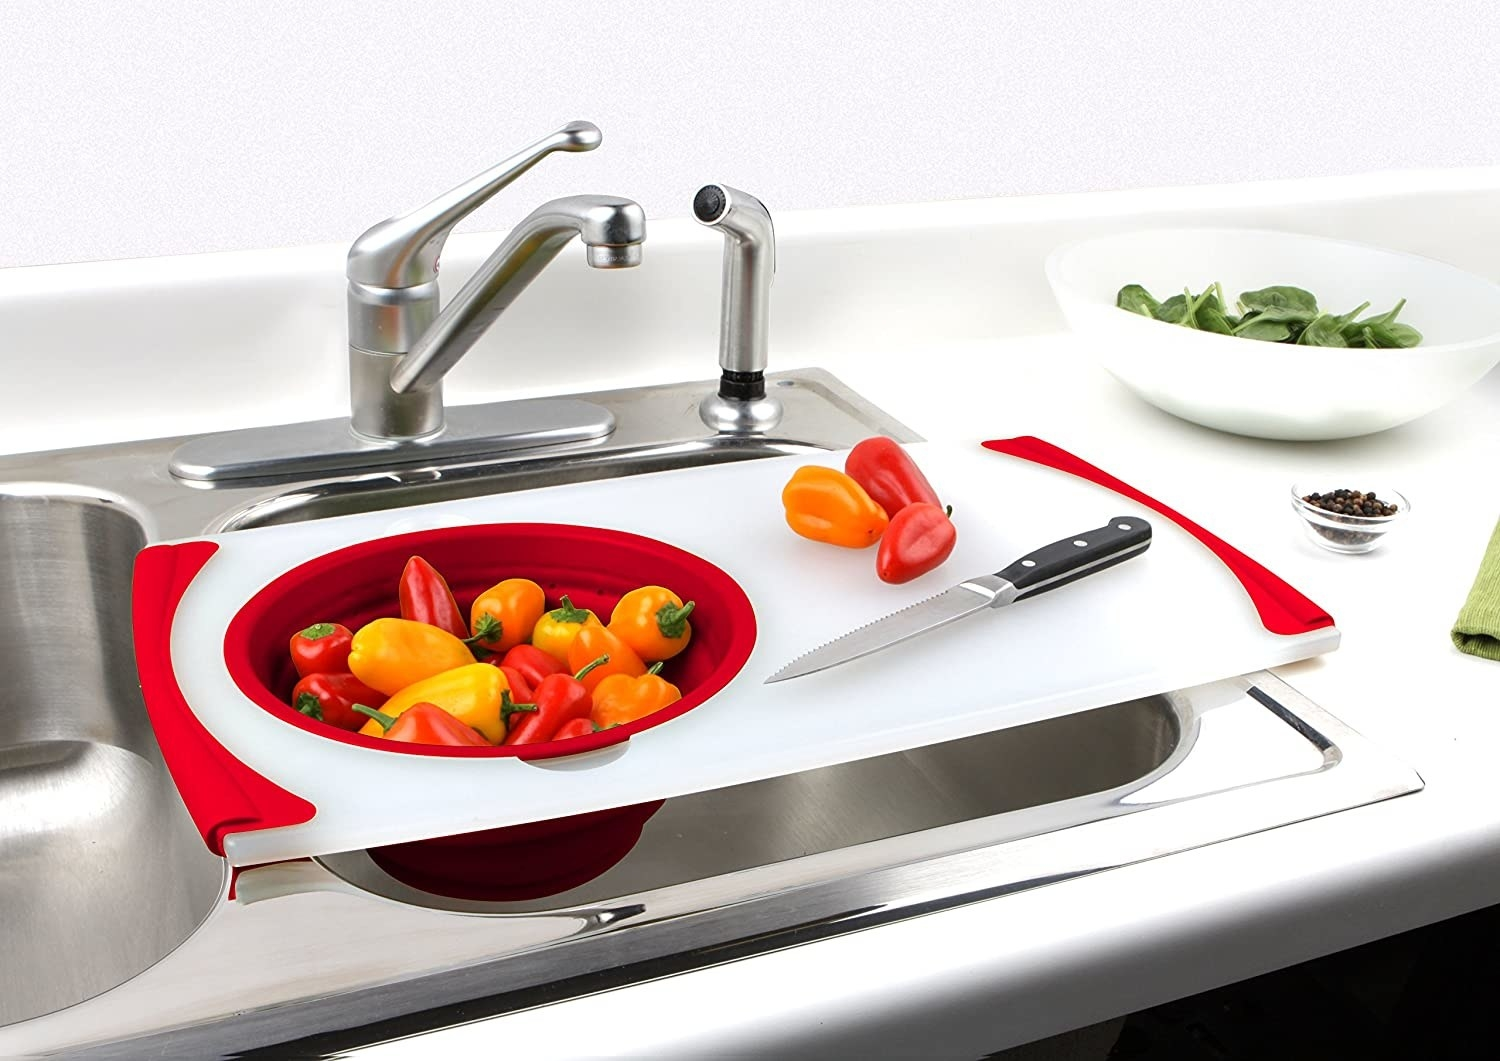 The strainer board sits over the sink, with bell peppers in the expanded colander on one half of the board so that it hangs into the sink